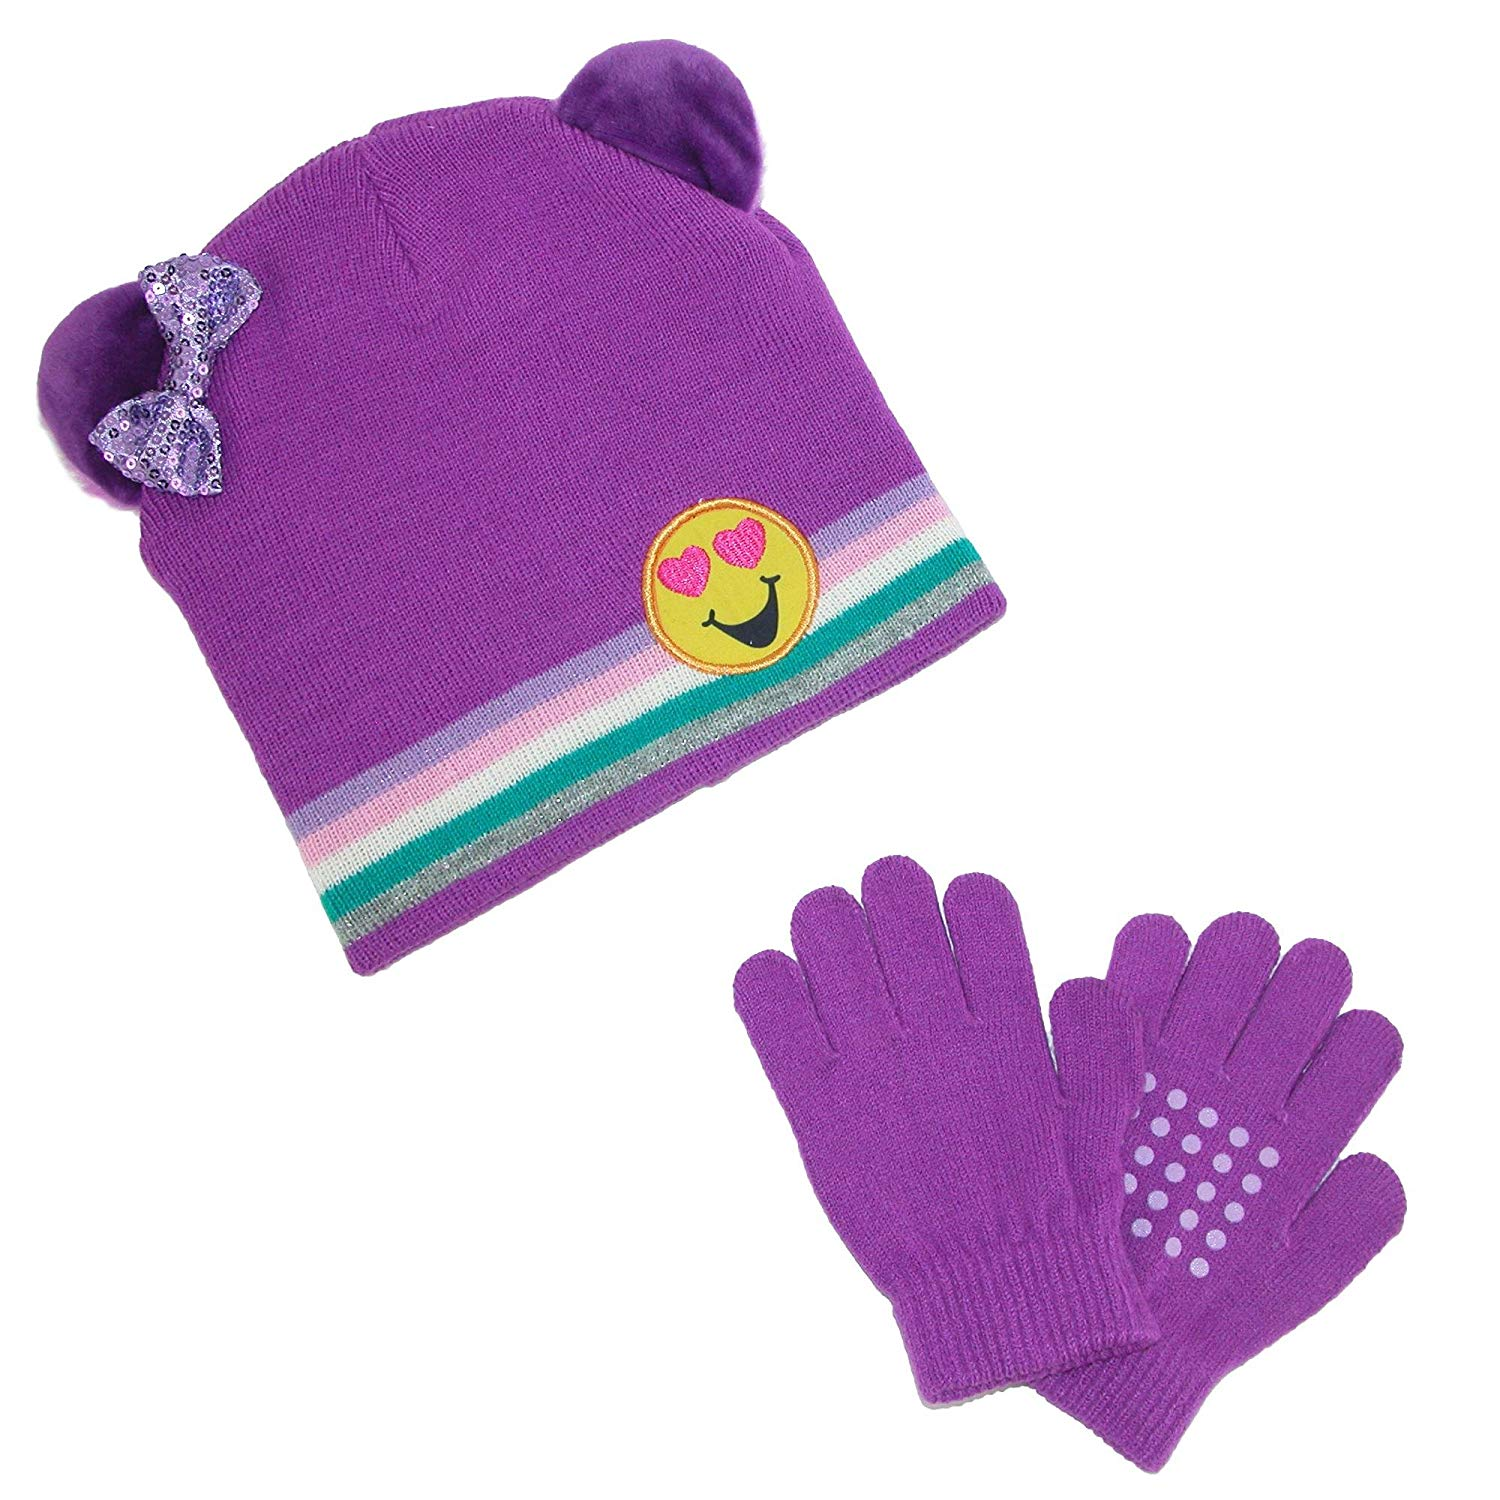 5fff6408785d53 Cheap Monkey Hat And Gloves, find Monkey Hat And Gloves deals on ...